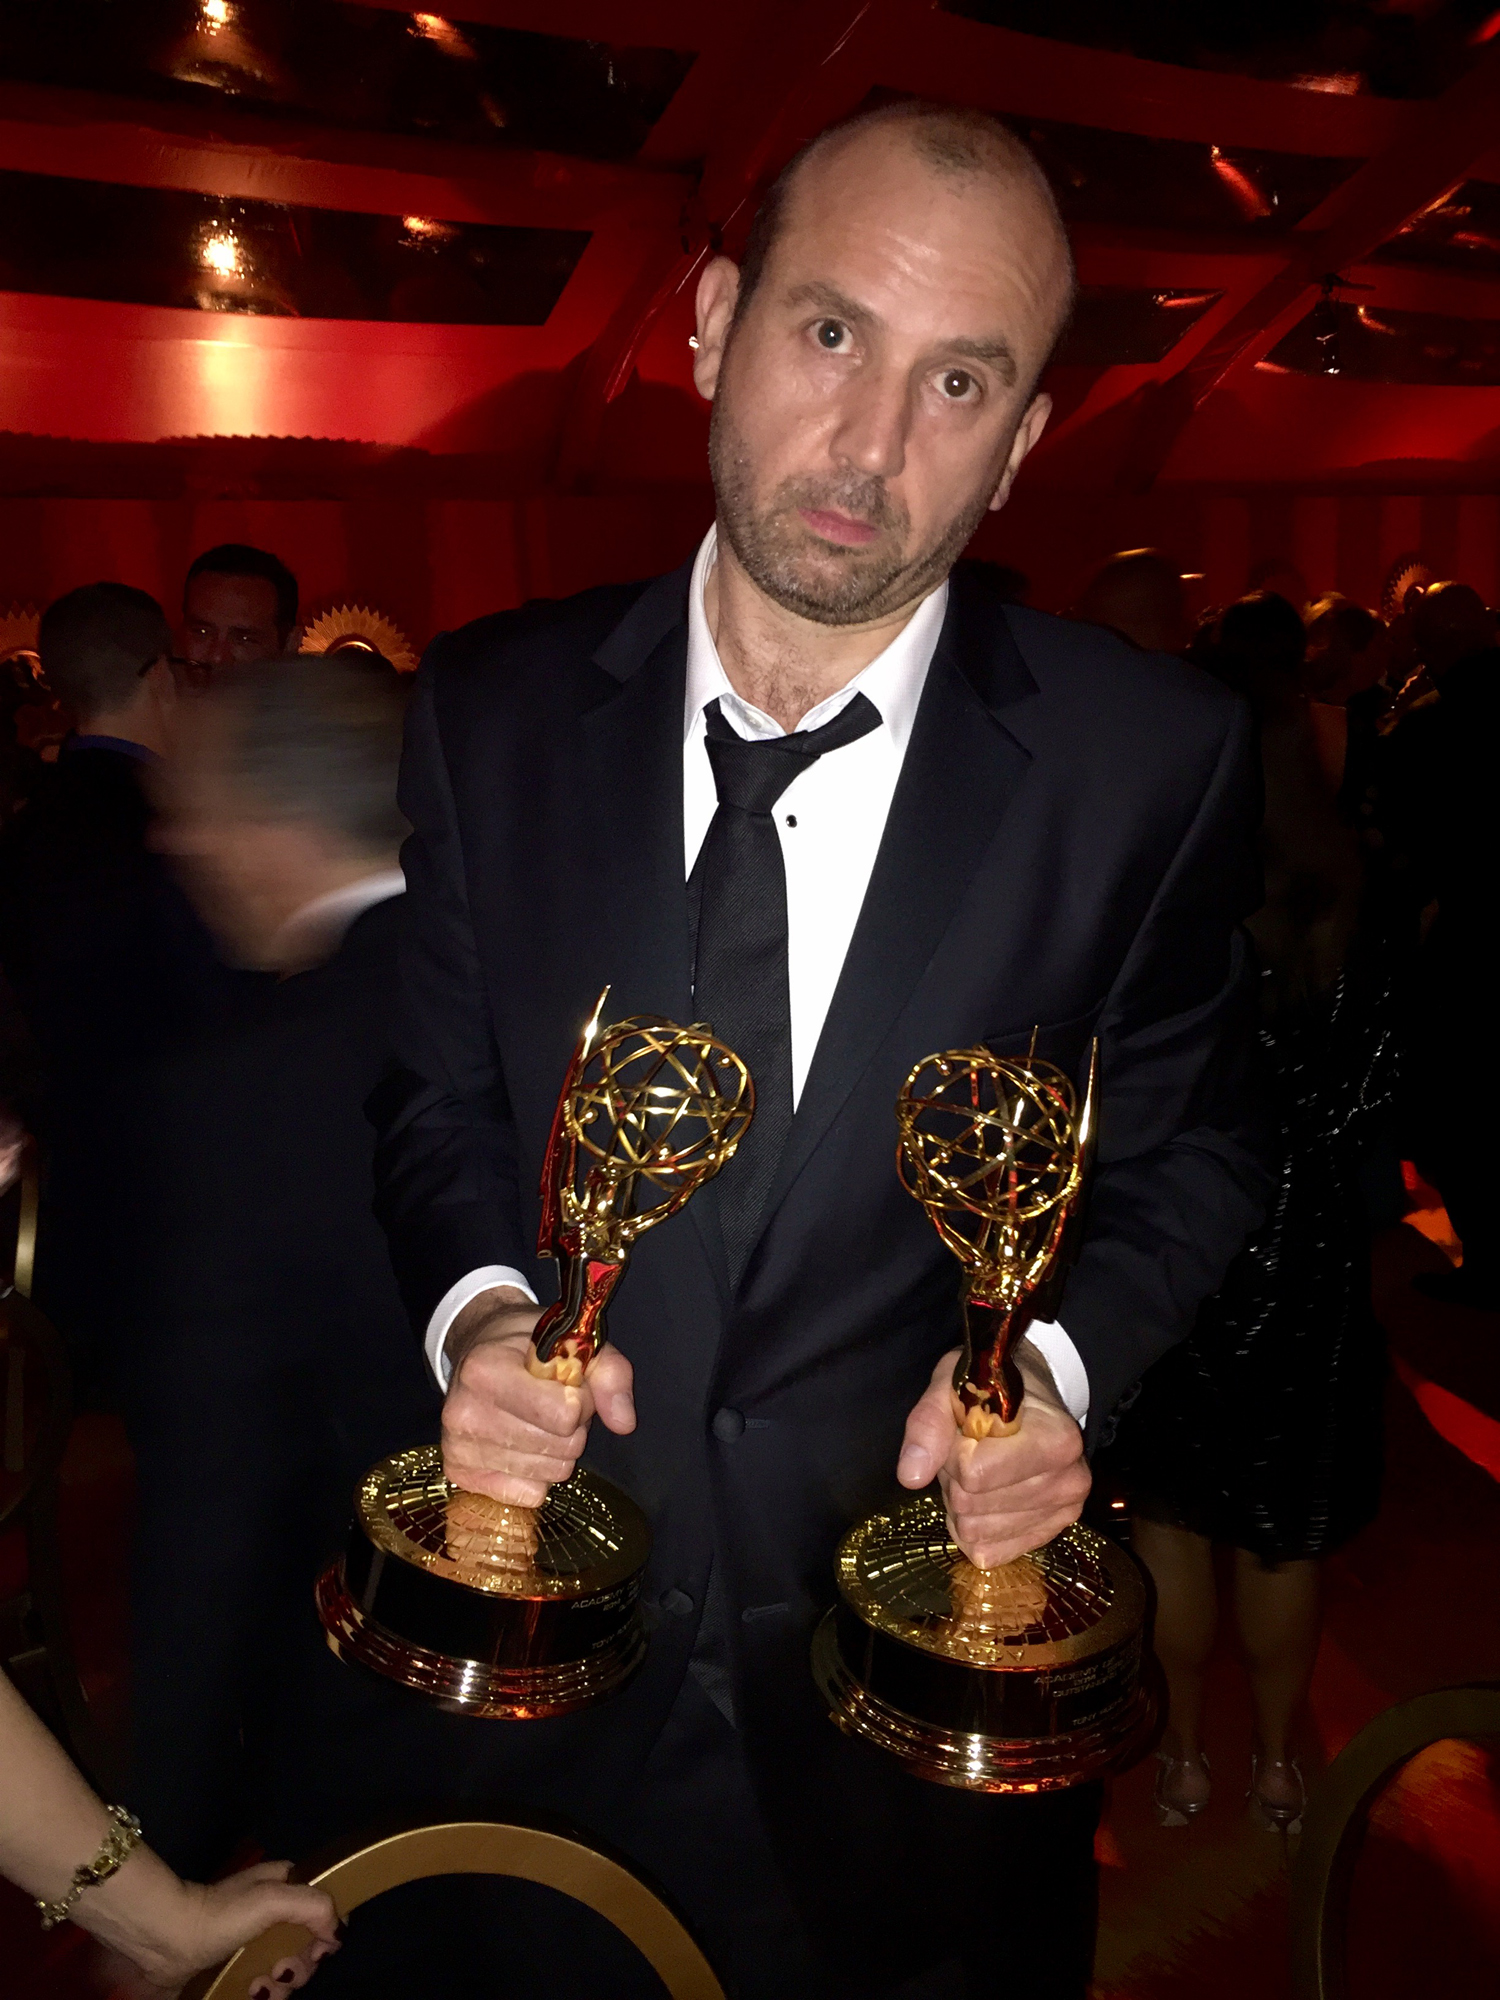 The Emmys have spoken 4 more years of Veep WHCInsider